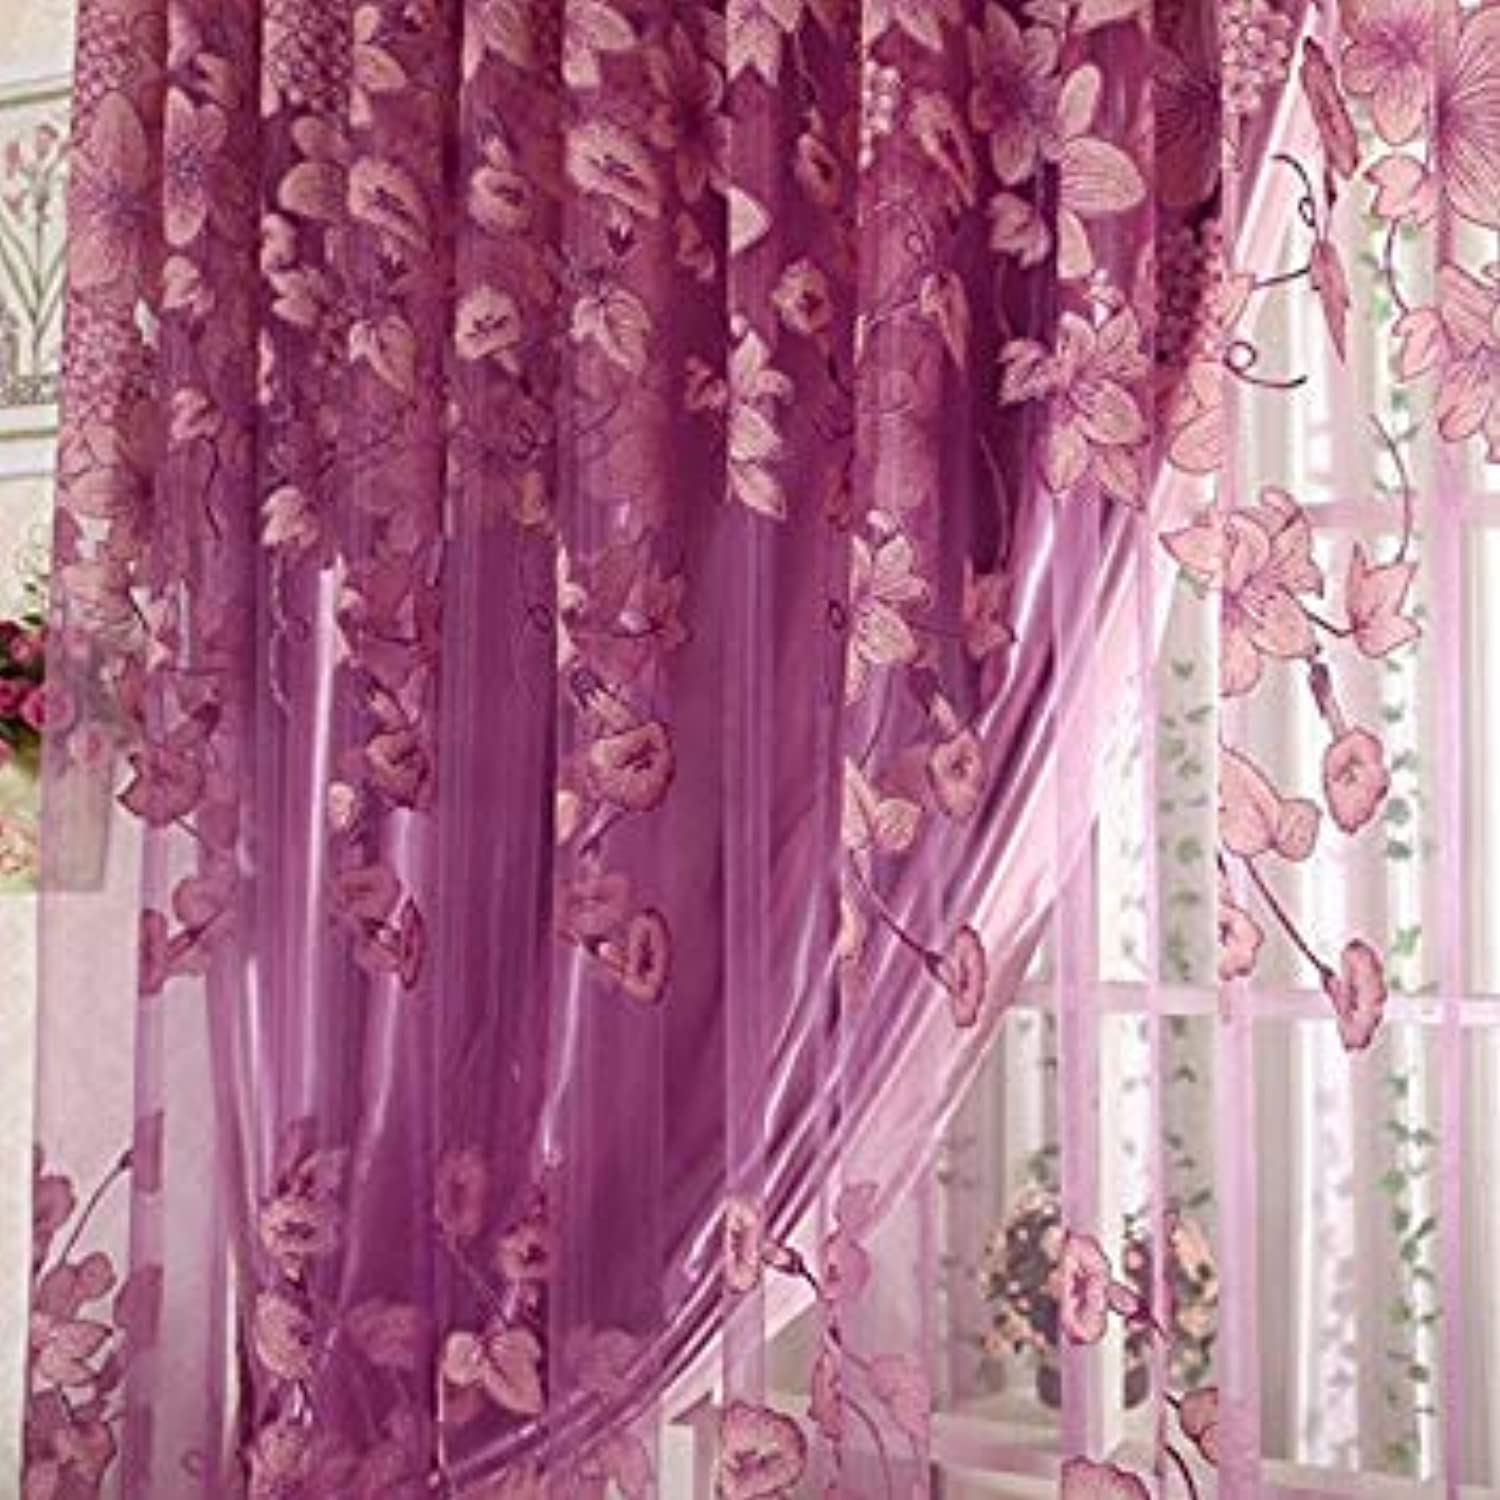 New 95  250 cm Tulle Curtains High-Quality Burnout Screens Designed for The Living Room